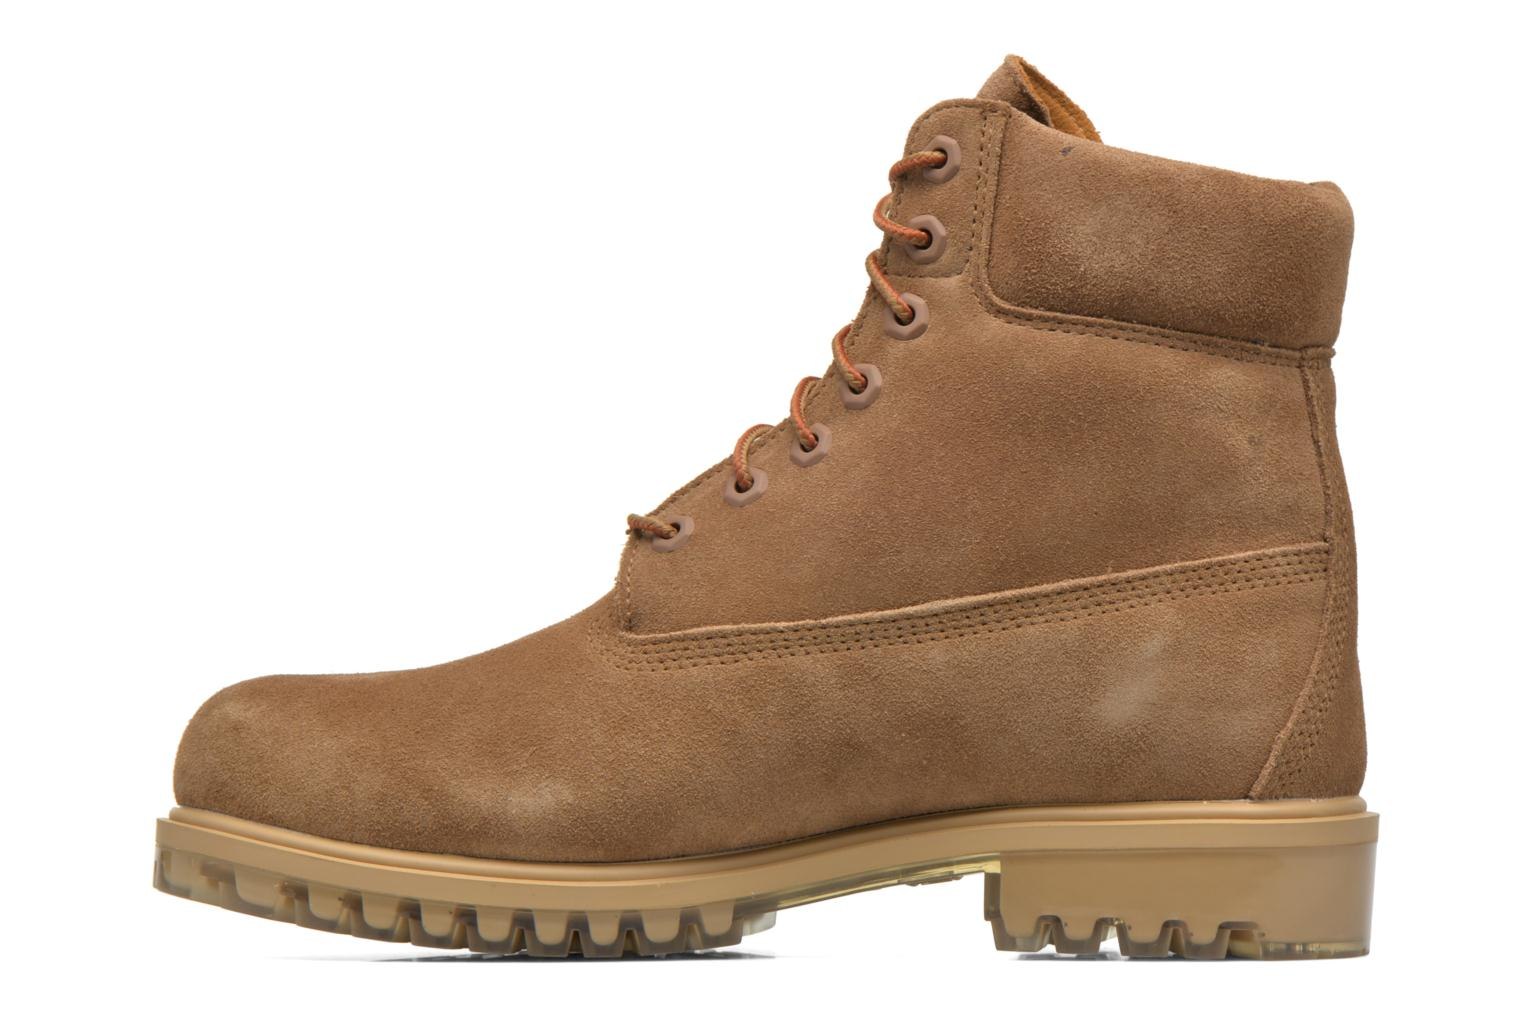 """Bottines et boots Timberland TPU 6"""" WP Suede Beige vue face"""